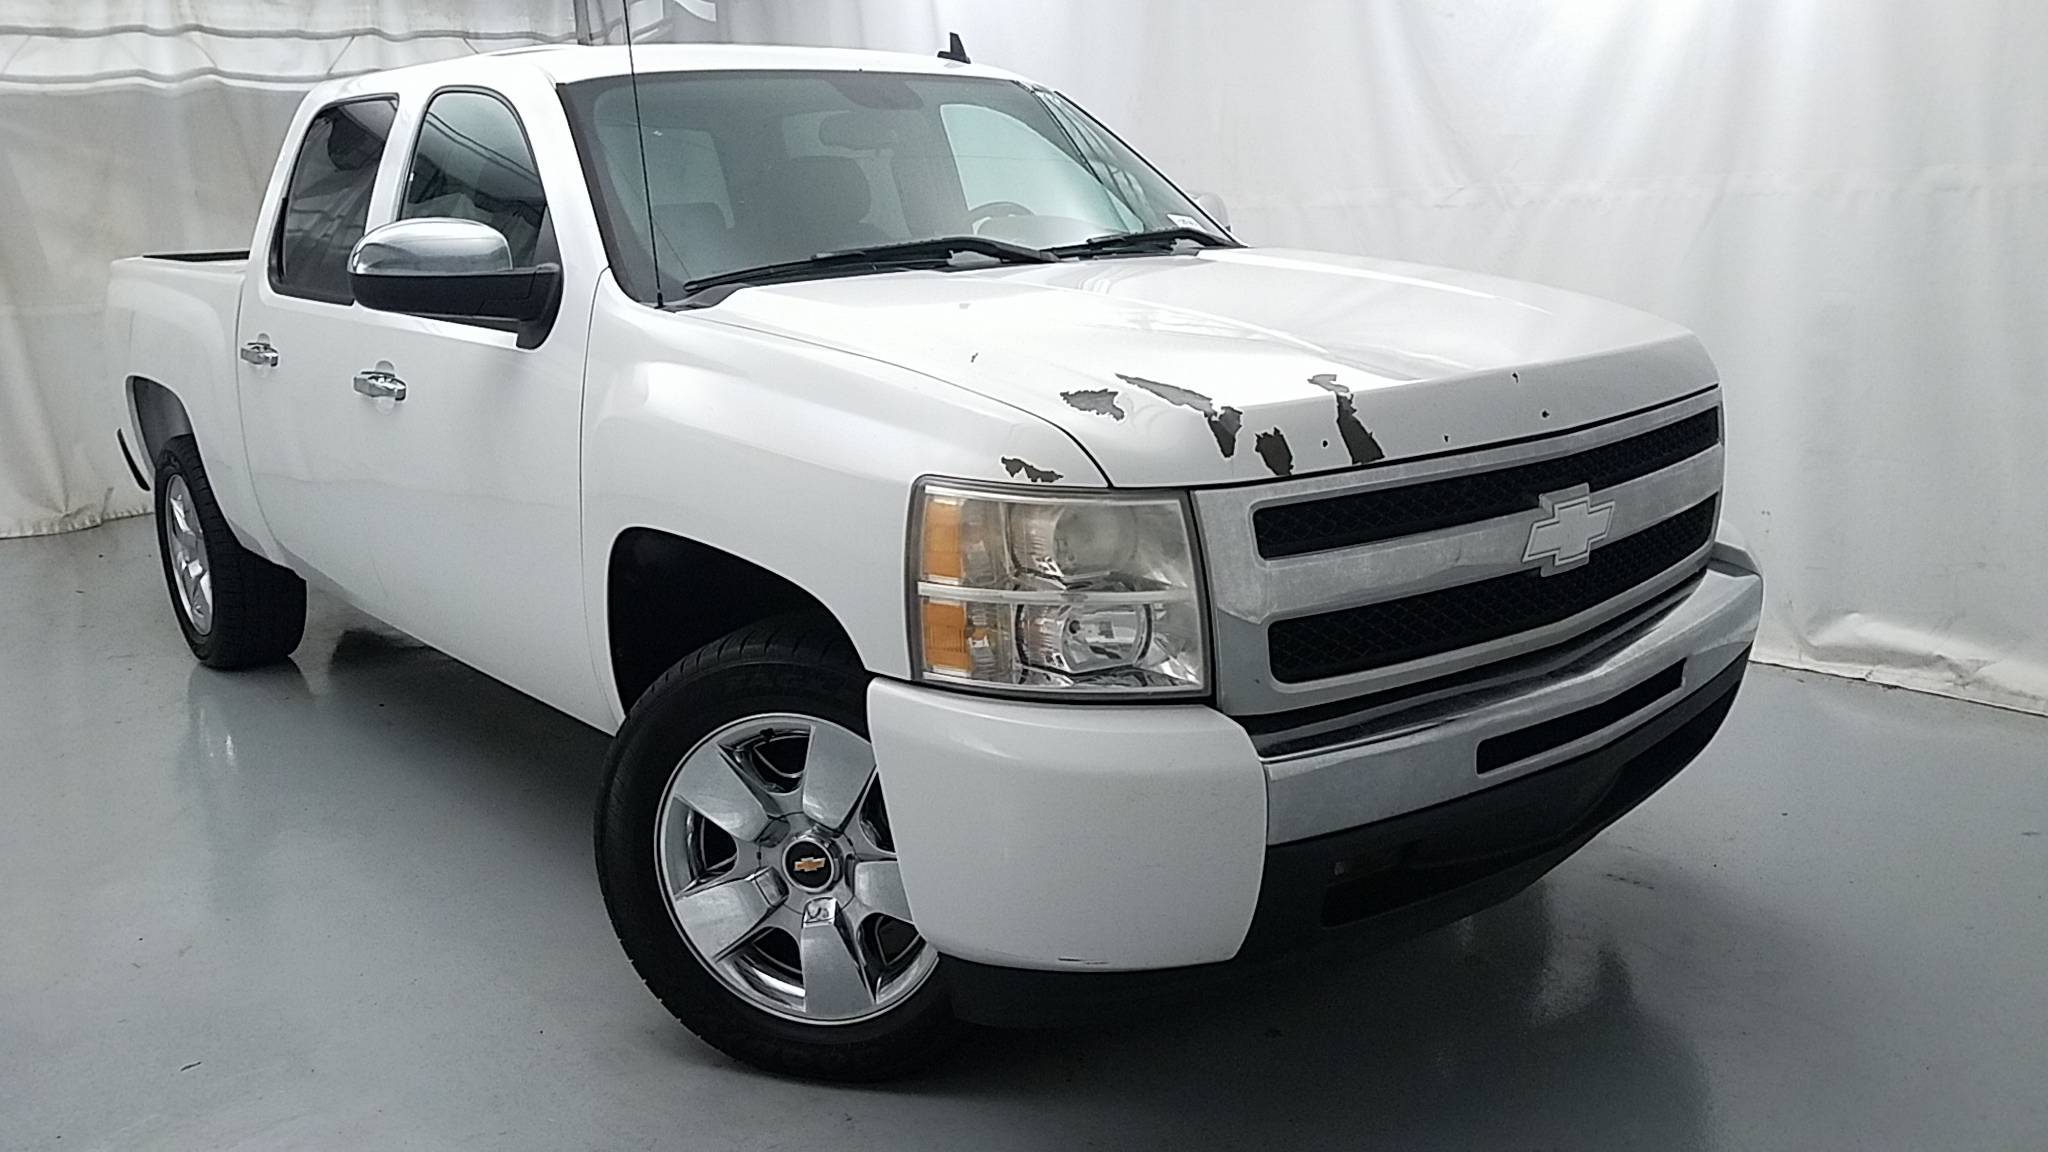 used Chevrolet Silverado 1500 at Ross Downing Used Cars in Hammond